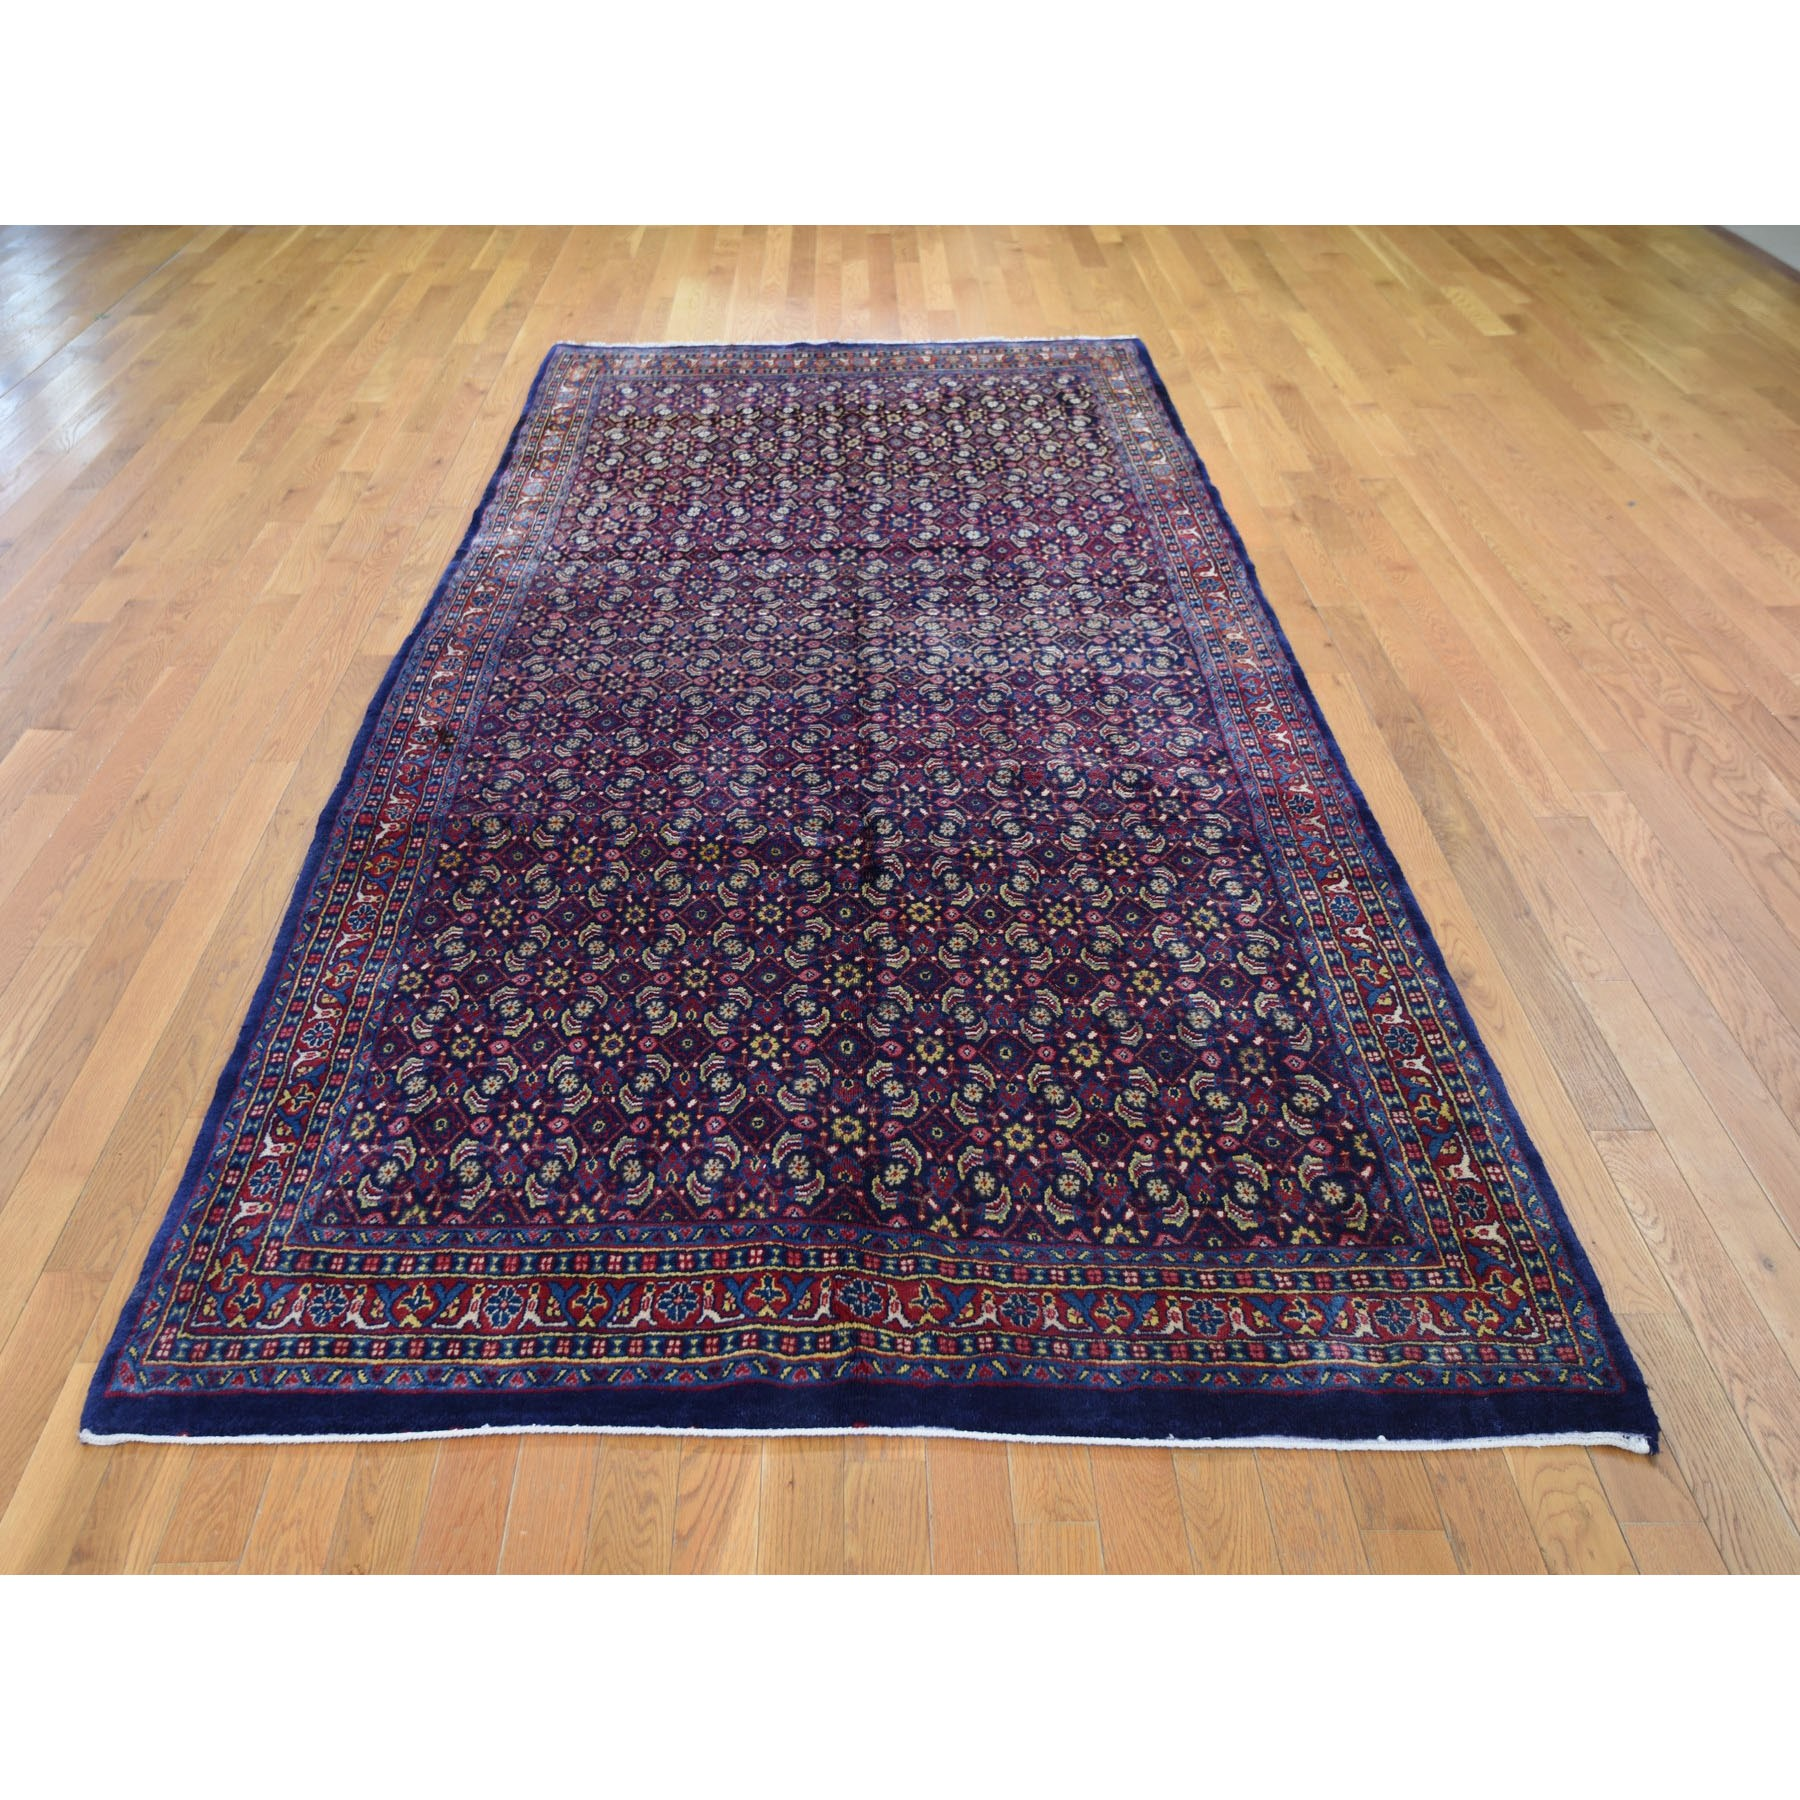 "5'5""x10'7"" Gallery Size Navy Vintage Persian All Over Fish Design Pure Wool Hand Woven Oriental Rug"